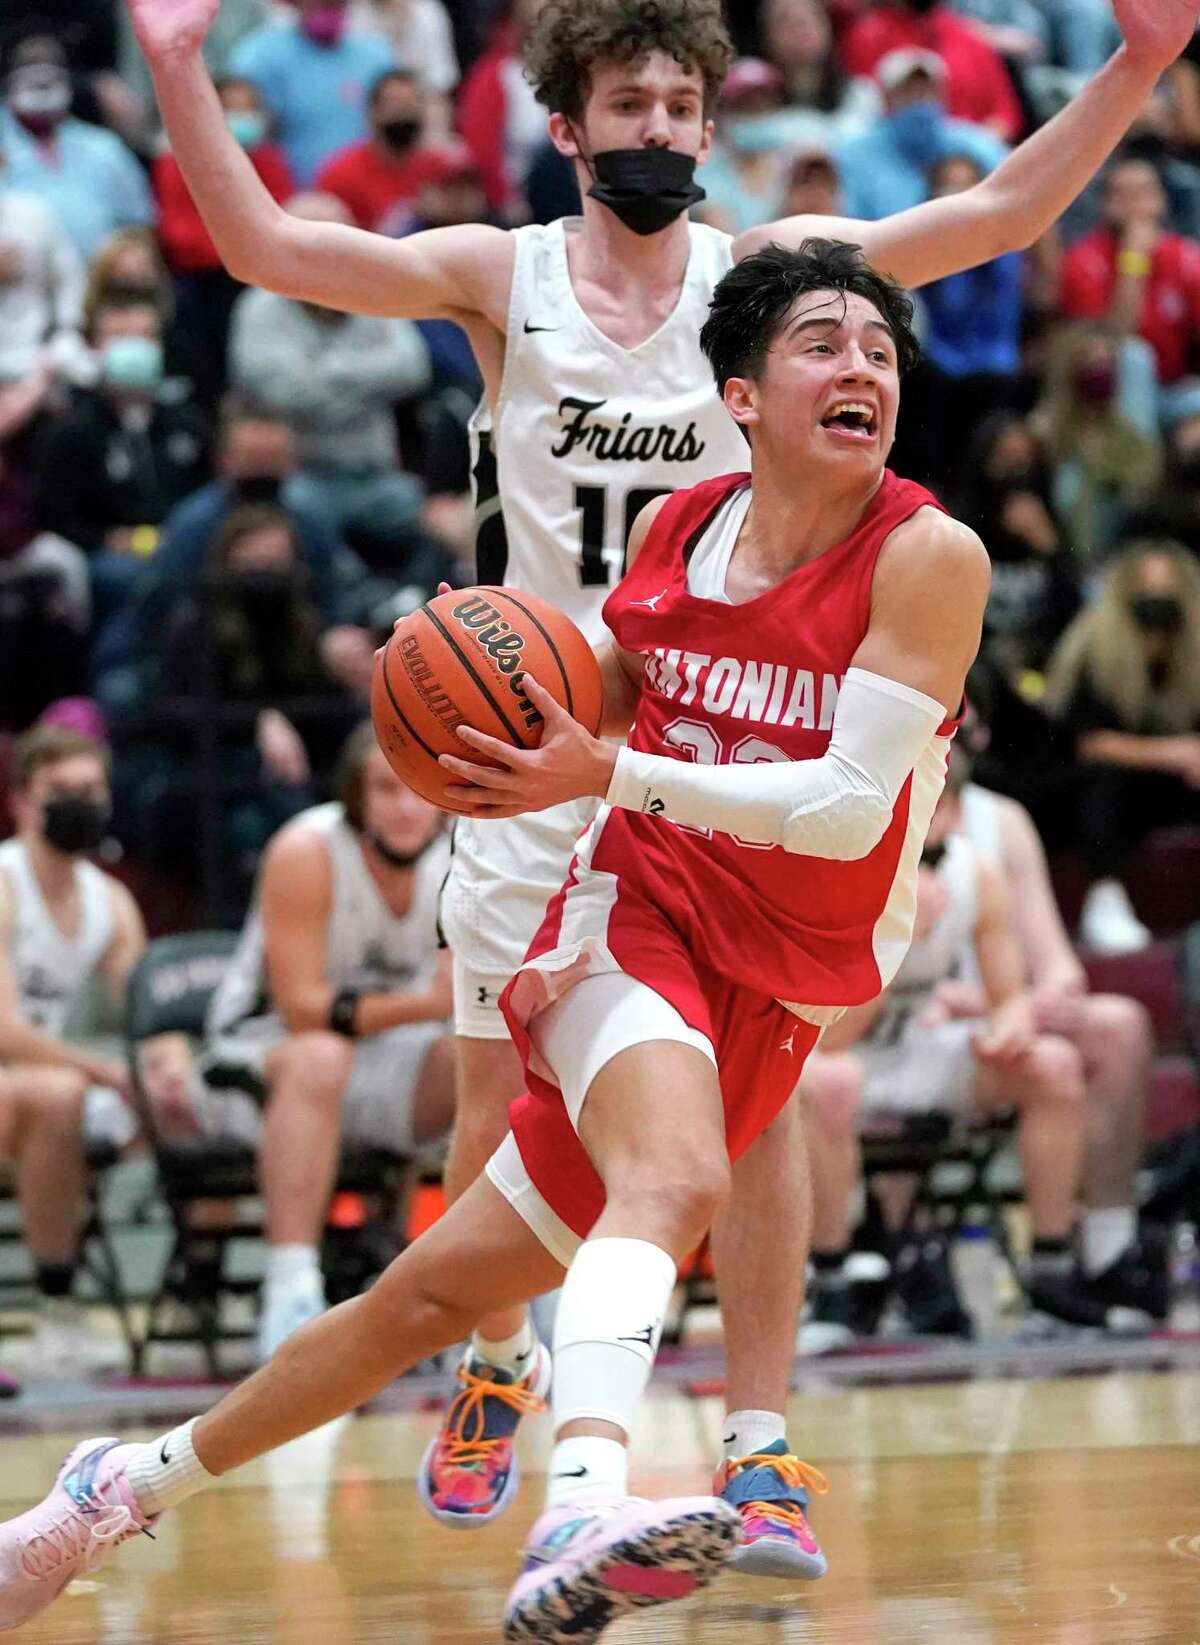 Antonian College Prep's Xavier Martinez (23) drives past Dallas Bishop Lynch's Robert Teal (10) during the TAPPS 6A boys basketball championship game at A&M Consolidated High School in College Station, Texas on Friday, March 12, 2021. (Sam Craft/Special Contributor)